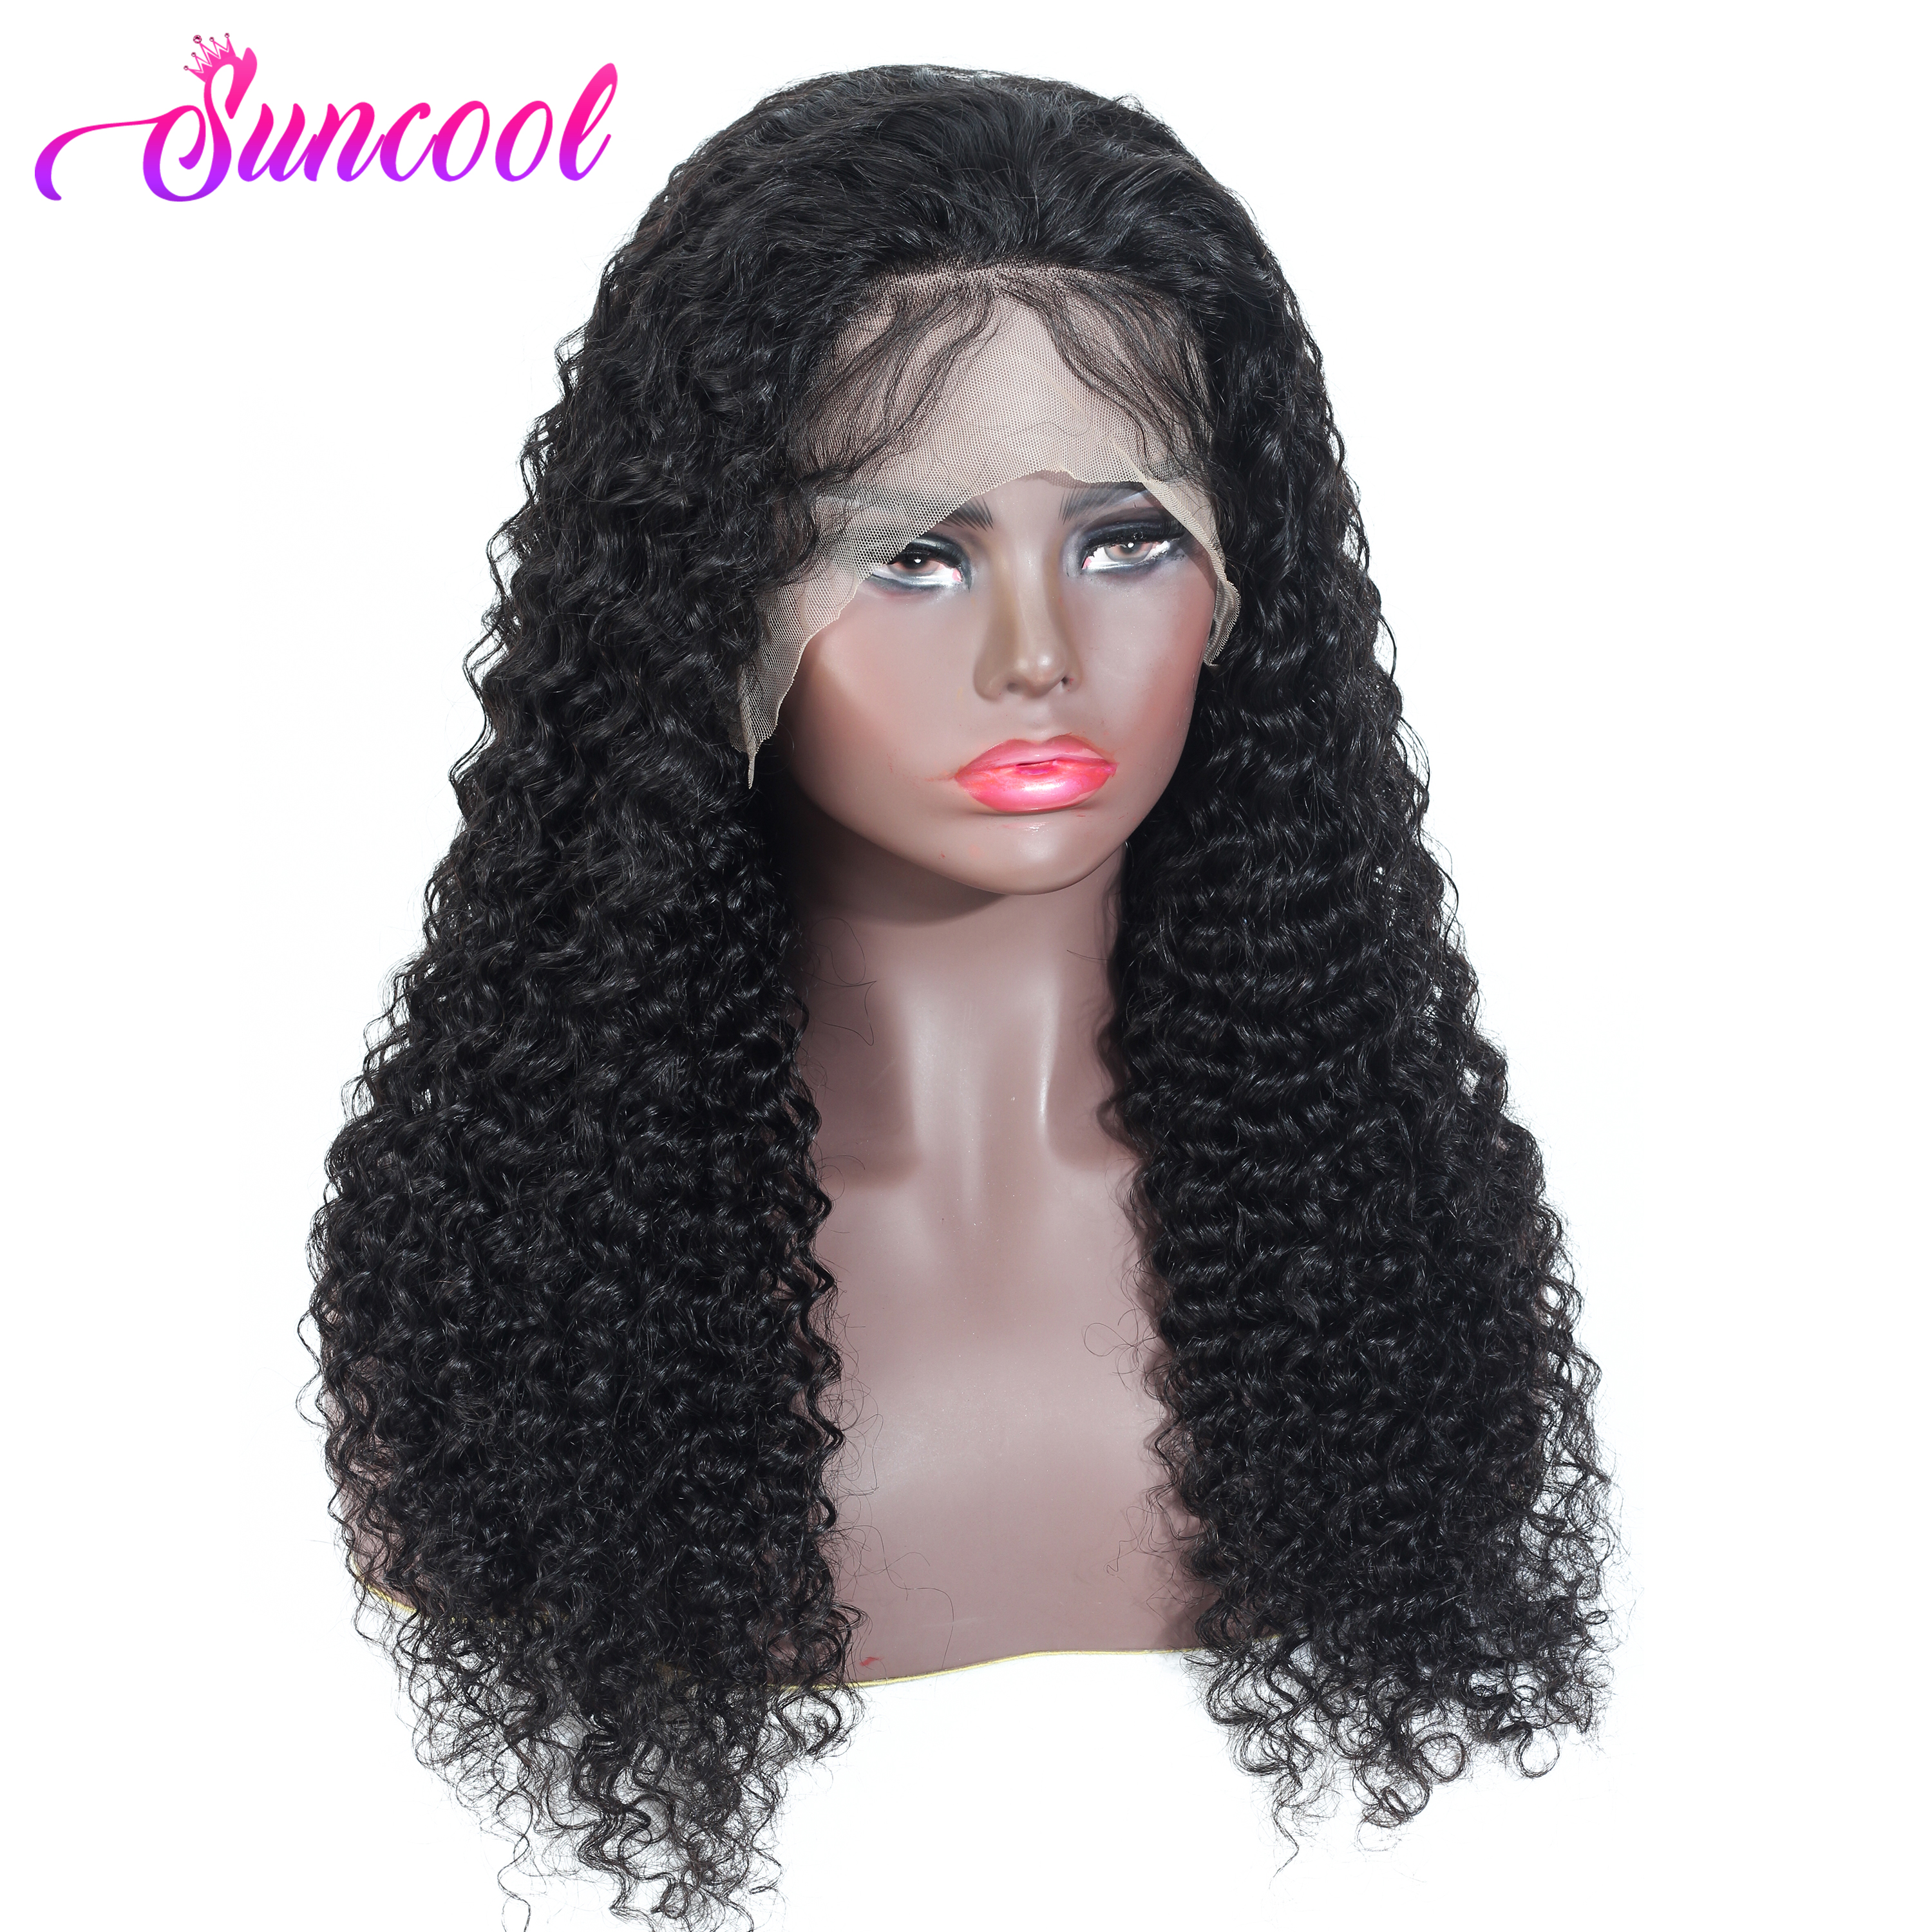 SUNCOOL13x4/13x6 Lace Front Human Hair Wigs Malaysian Jerry Curl Human Hair Wigs 360 Lace Frontal Wig Pre Plucked With Baby Hair